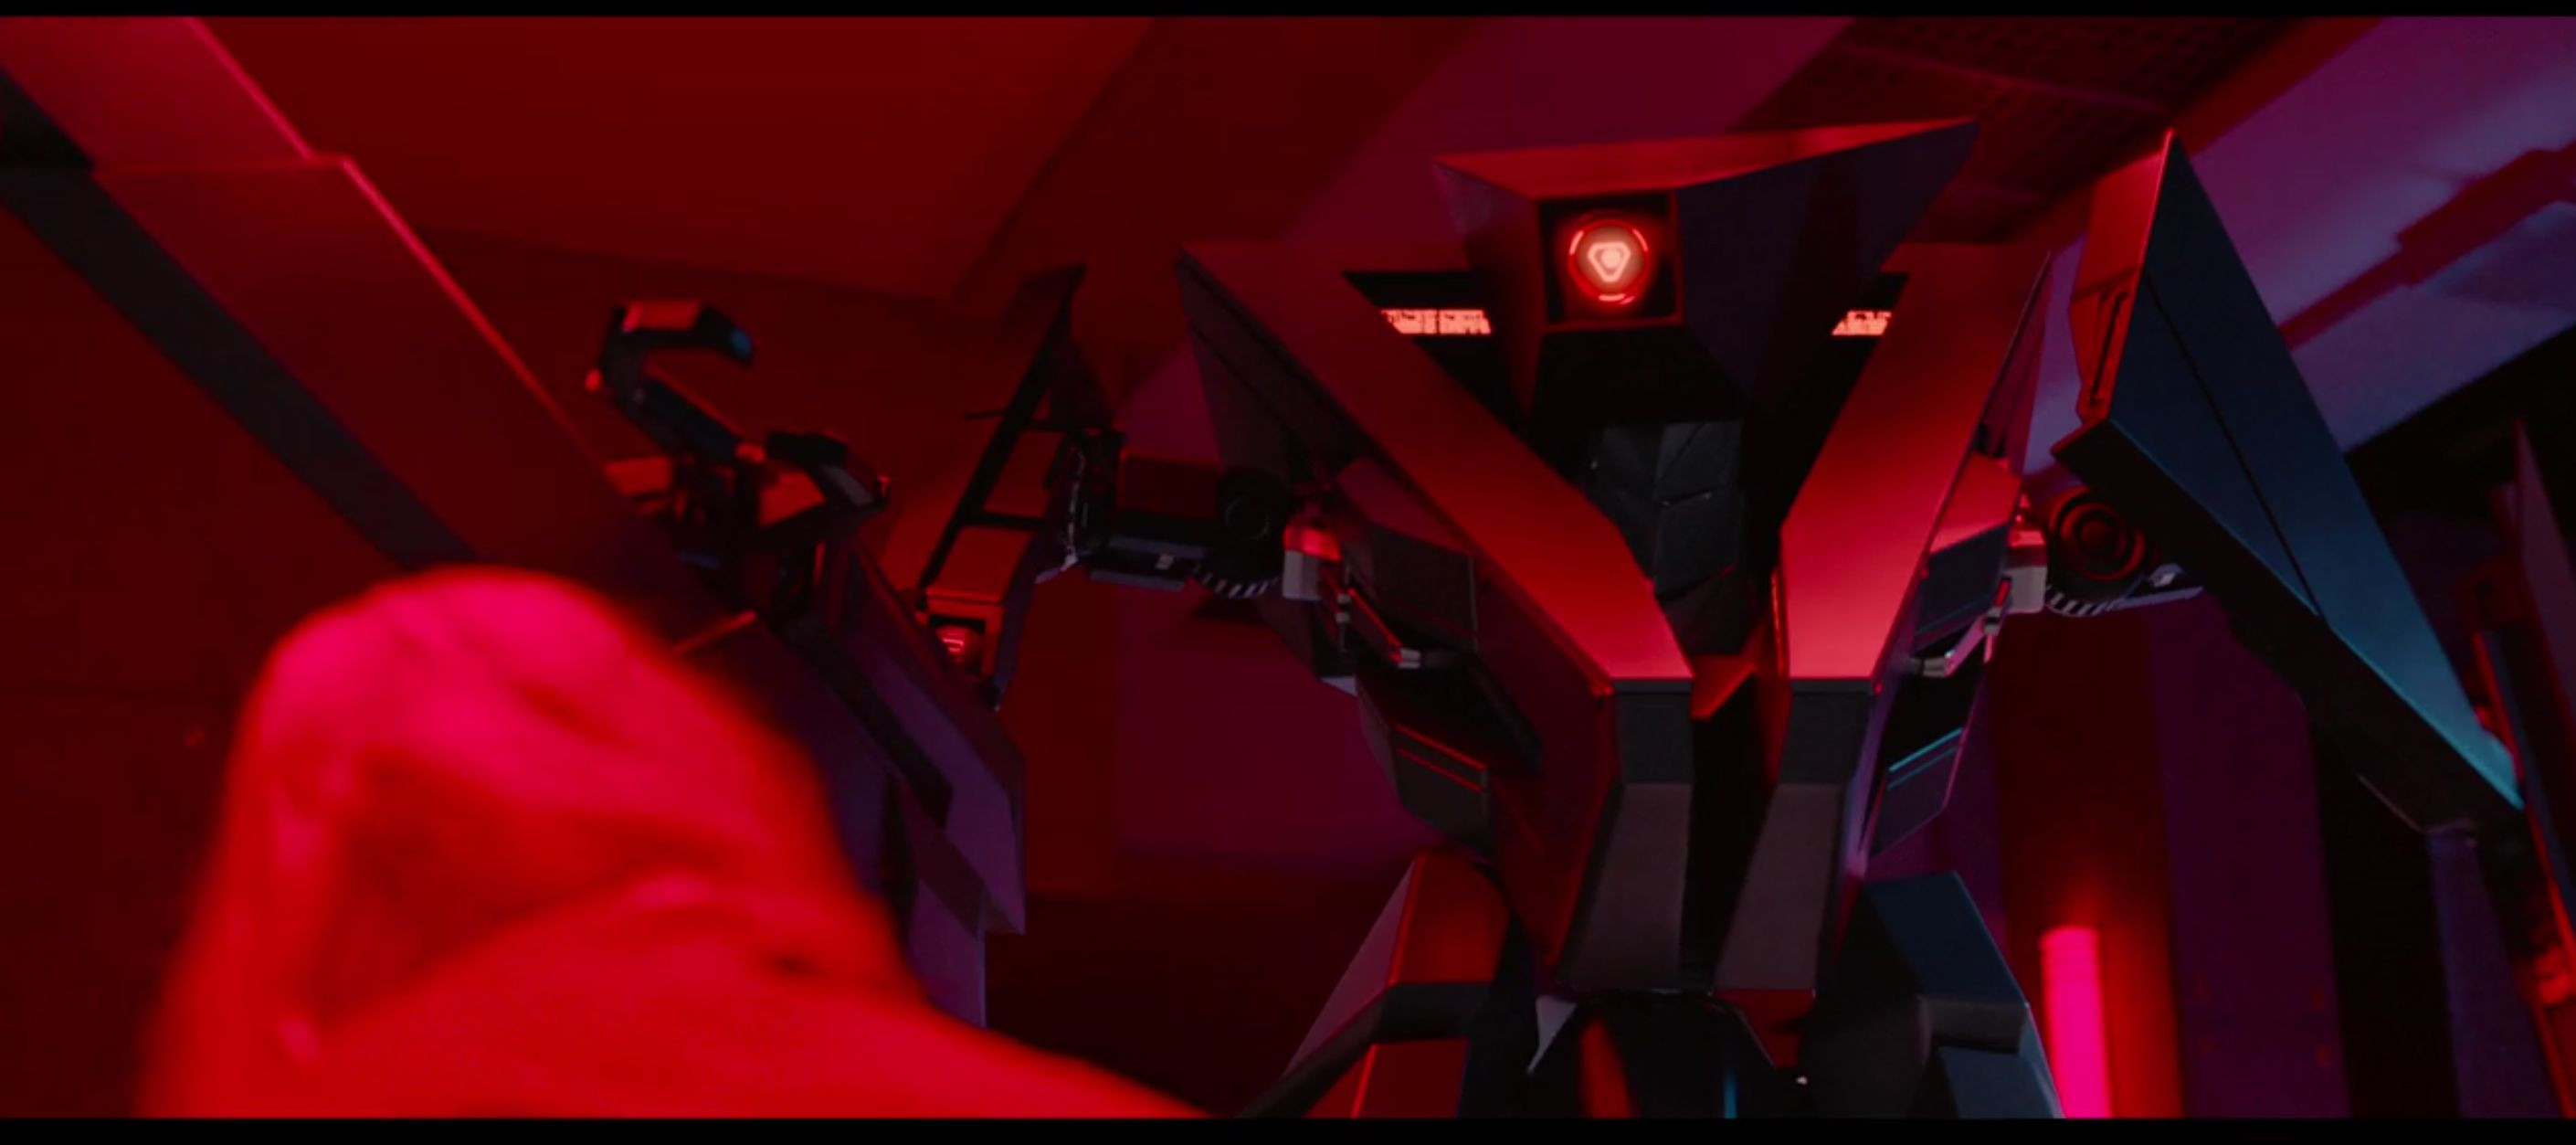 TAU Movie shot of final 3d model made by the vfx team from the project